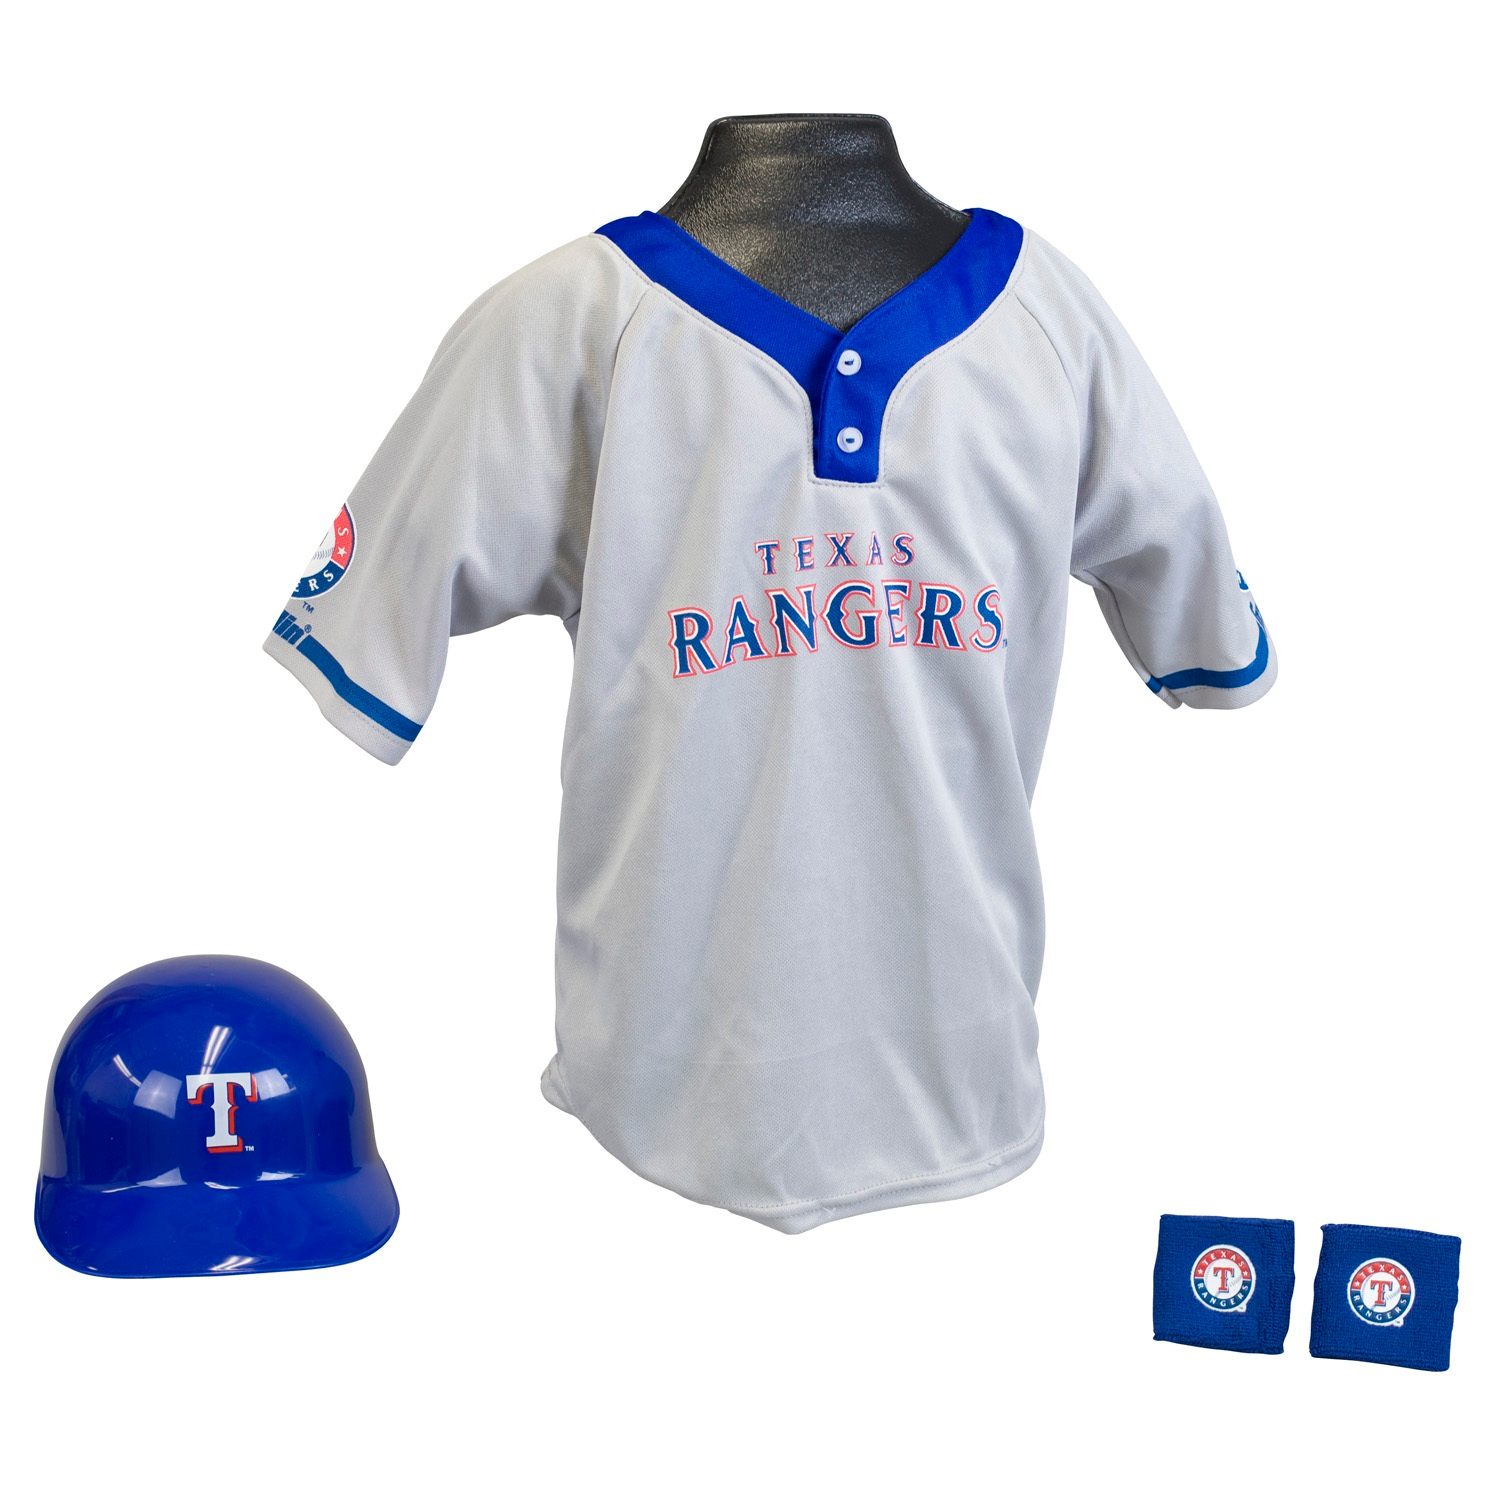 Texas Rangers MLB Youth Uniform Set Halloween Costume